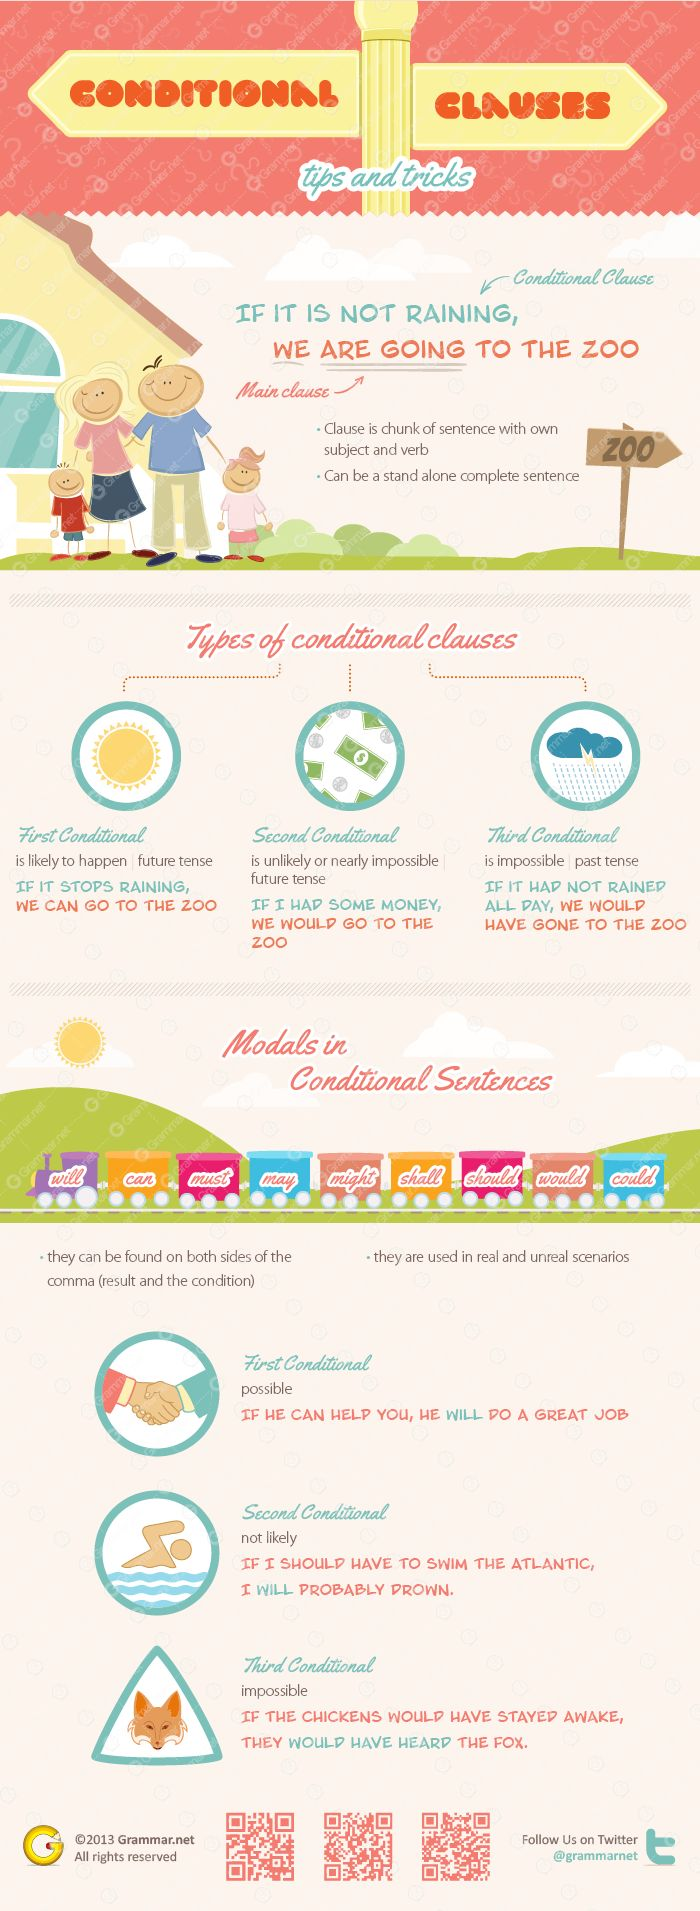 Conditional clauses: tips and tricks. How to master conditions #infographic by @Grammarnet